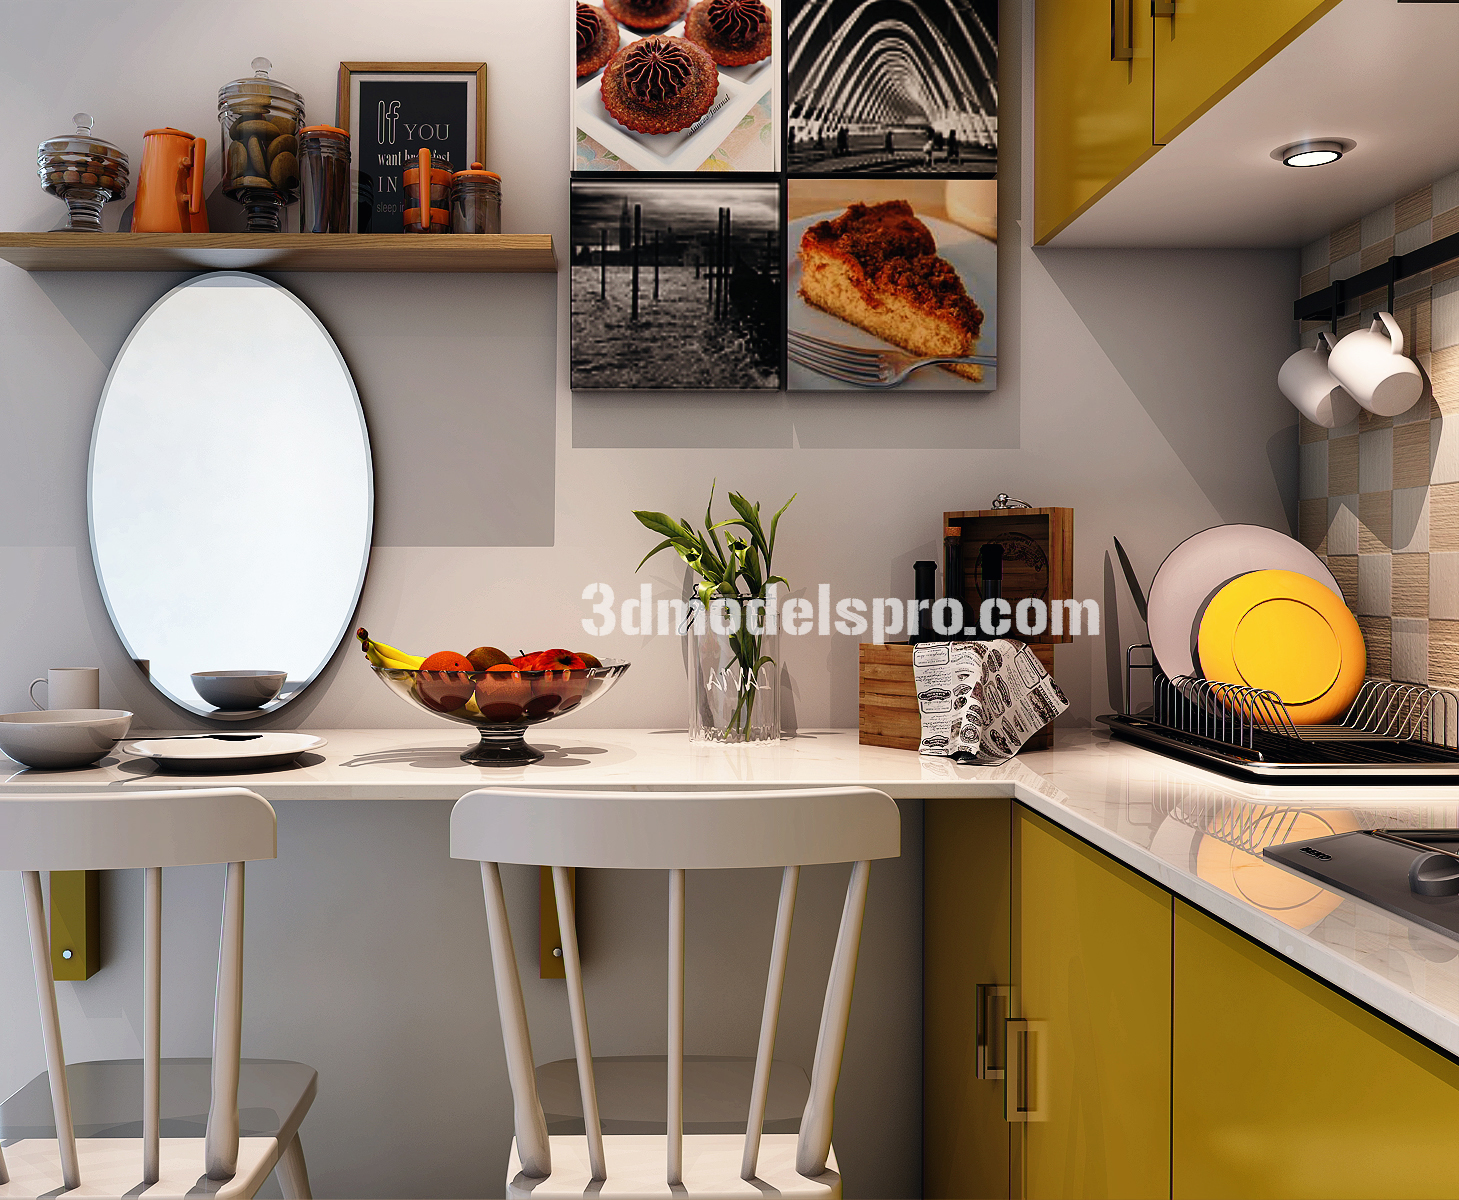 Sketchup Scene Very Small Kitchen FREE STUFFS FOR